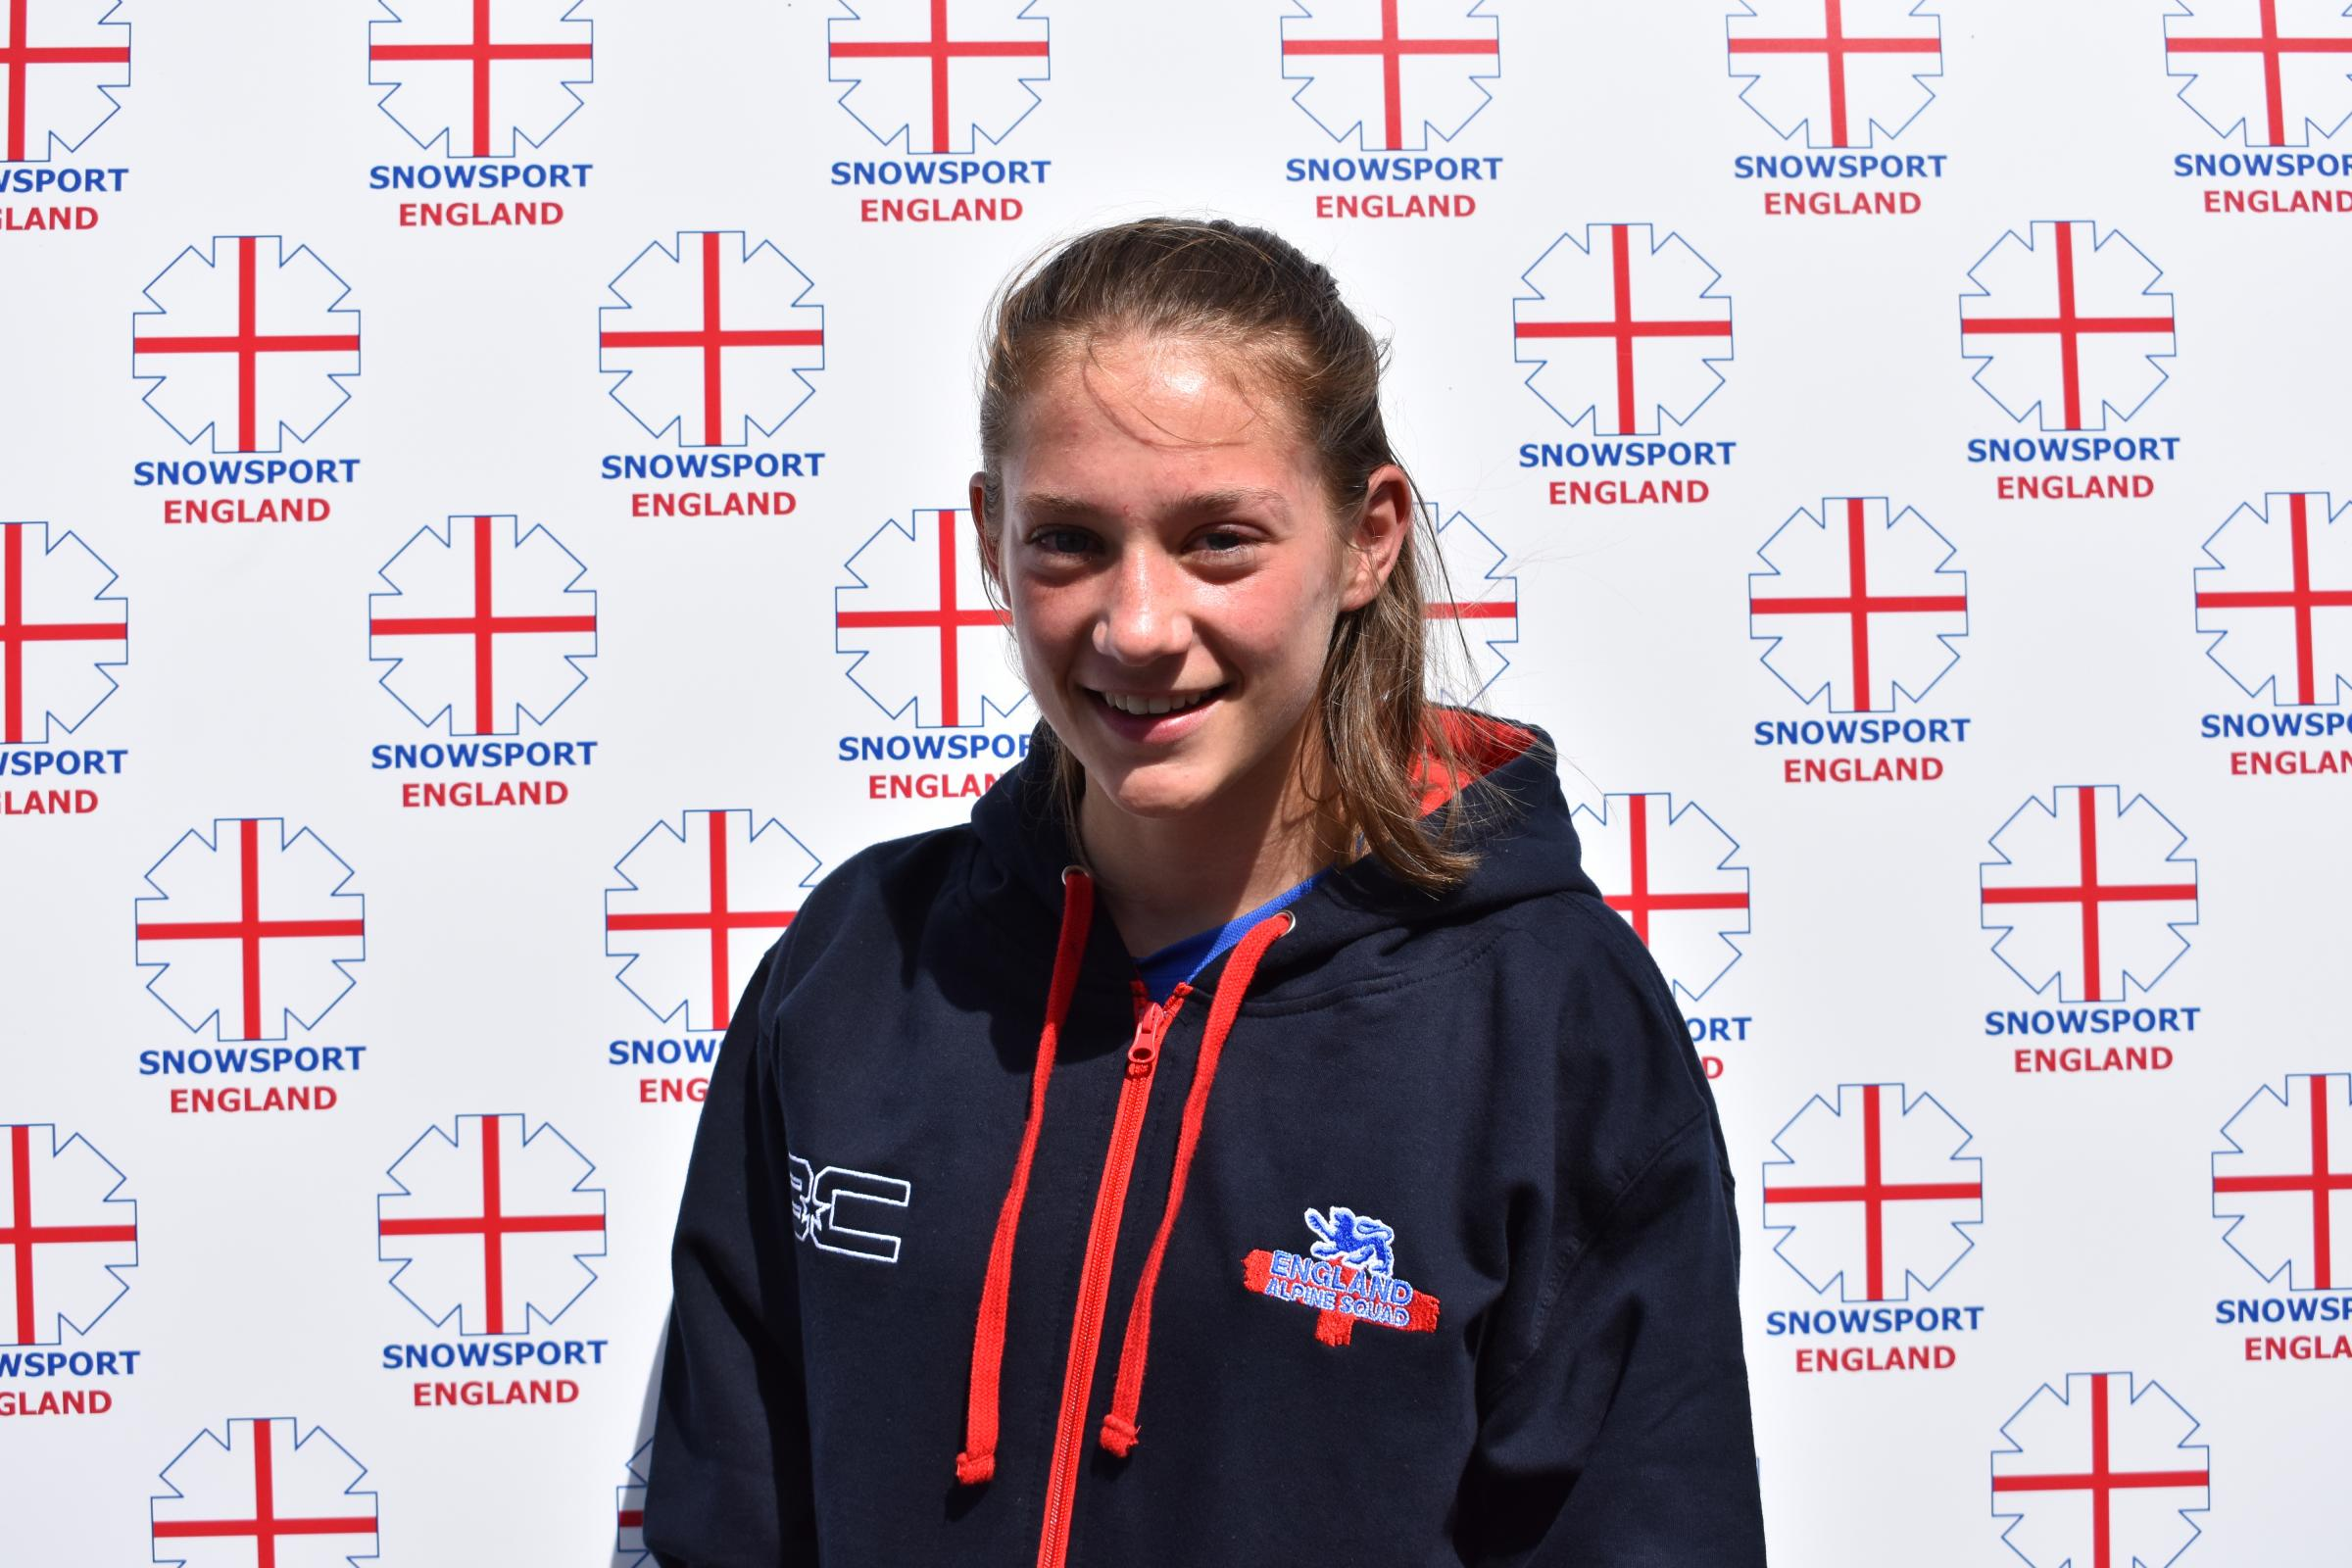 EXCITED: Bonnie Davenport cannot wait for the English Alpine Championships